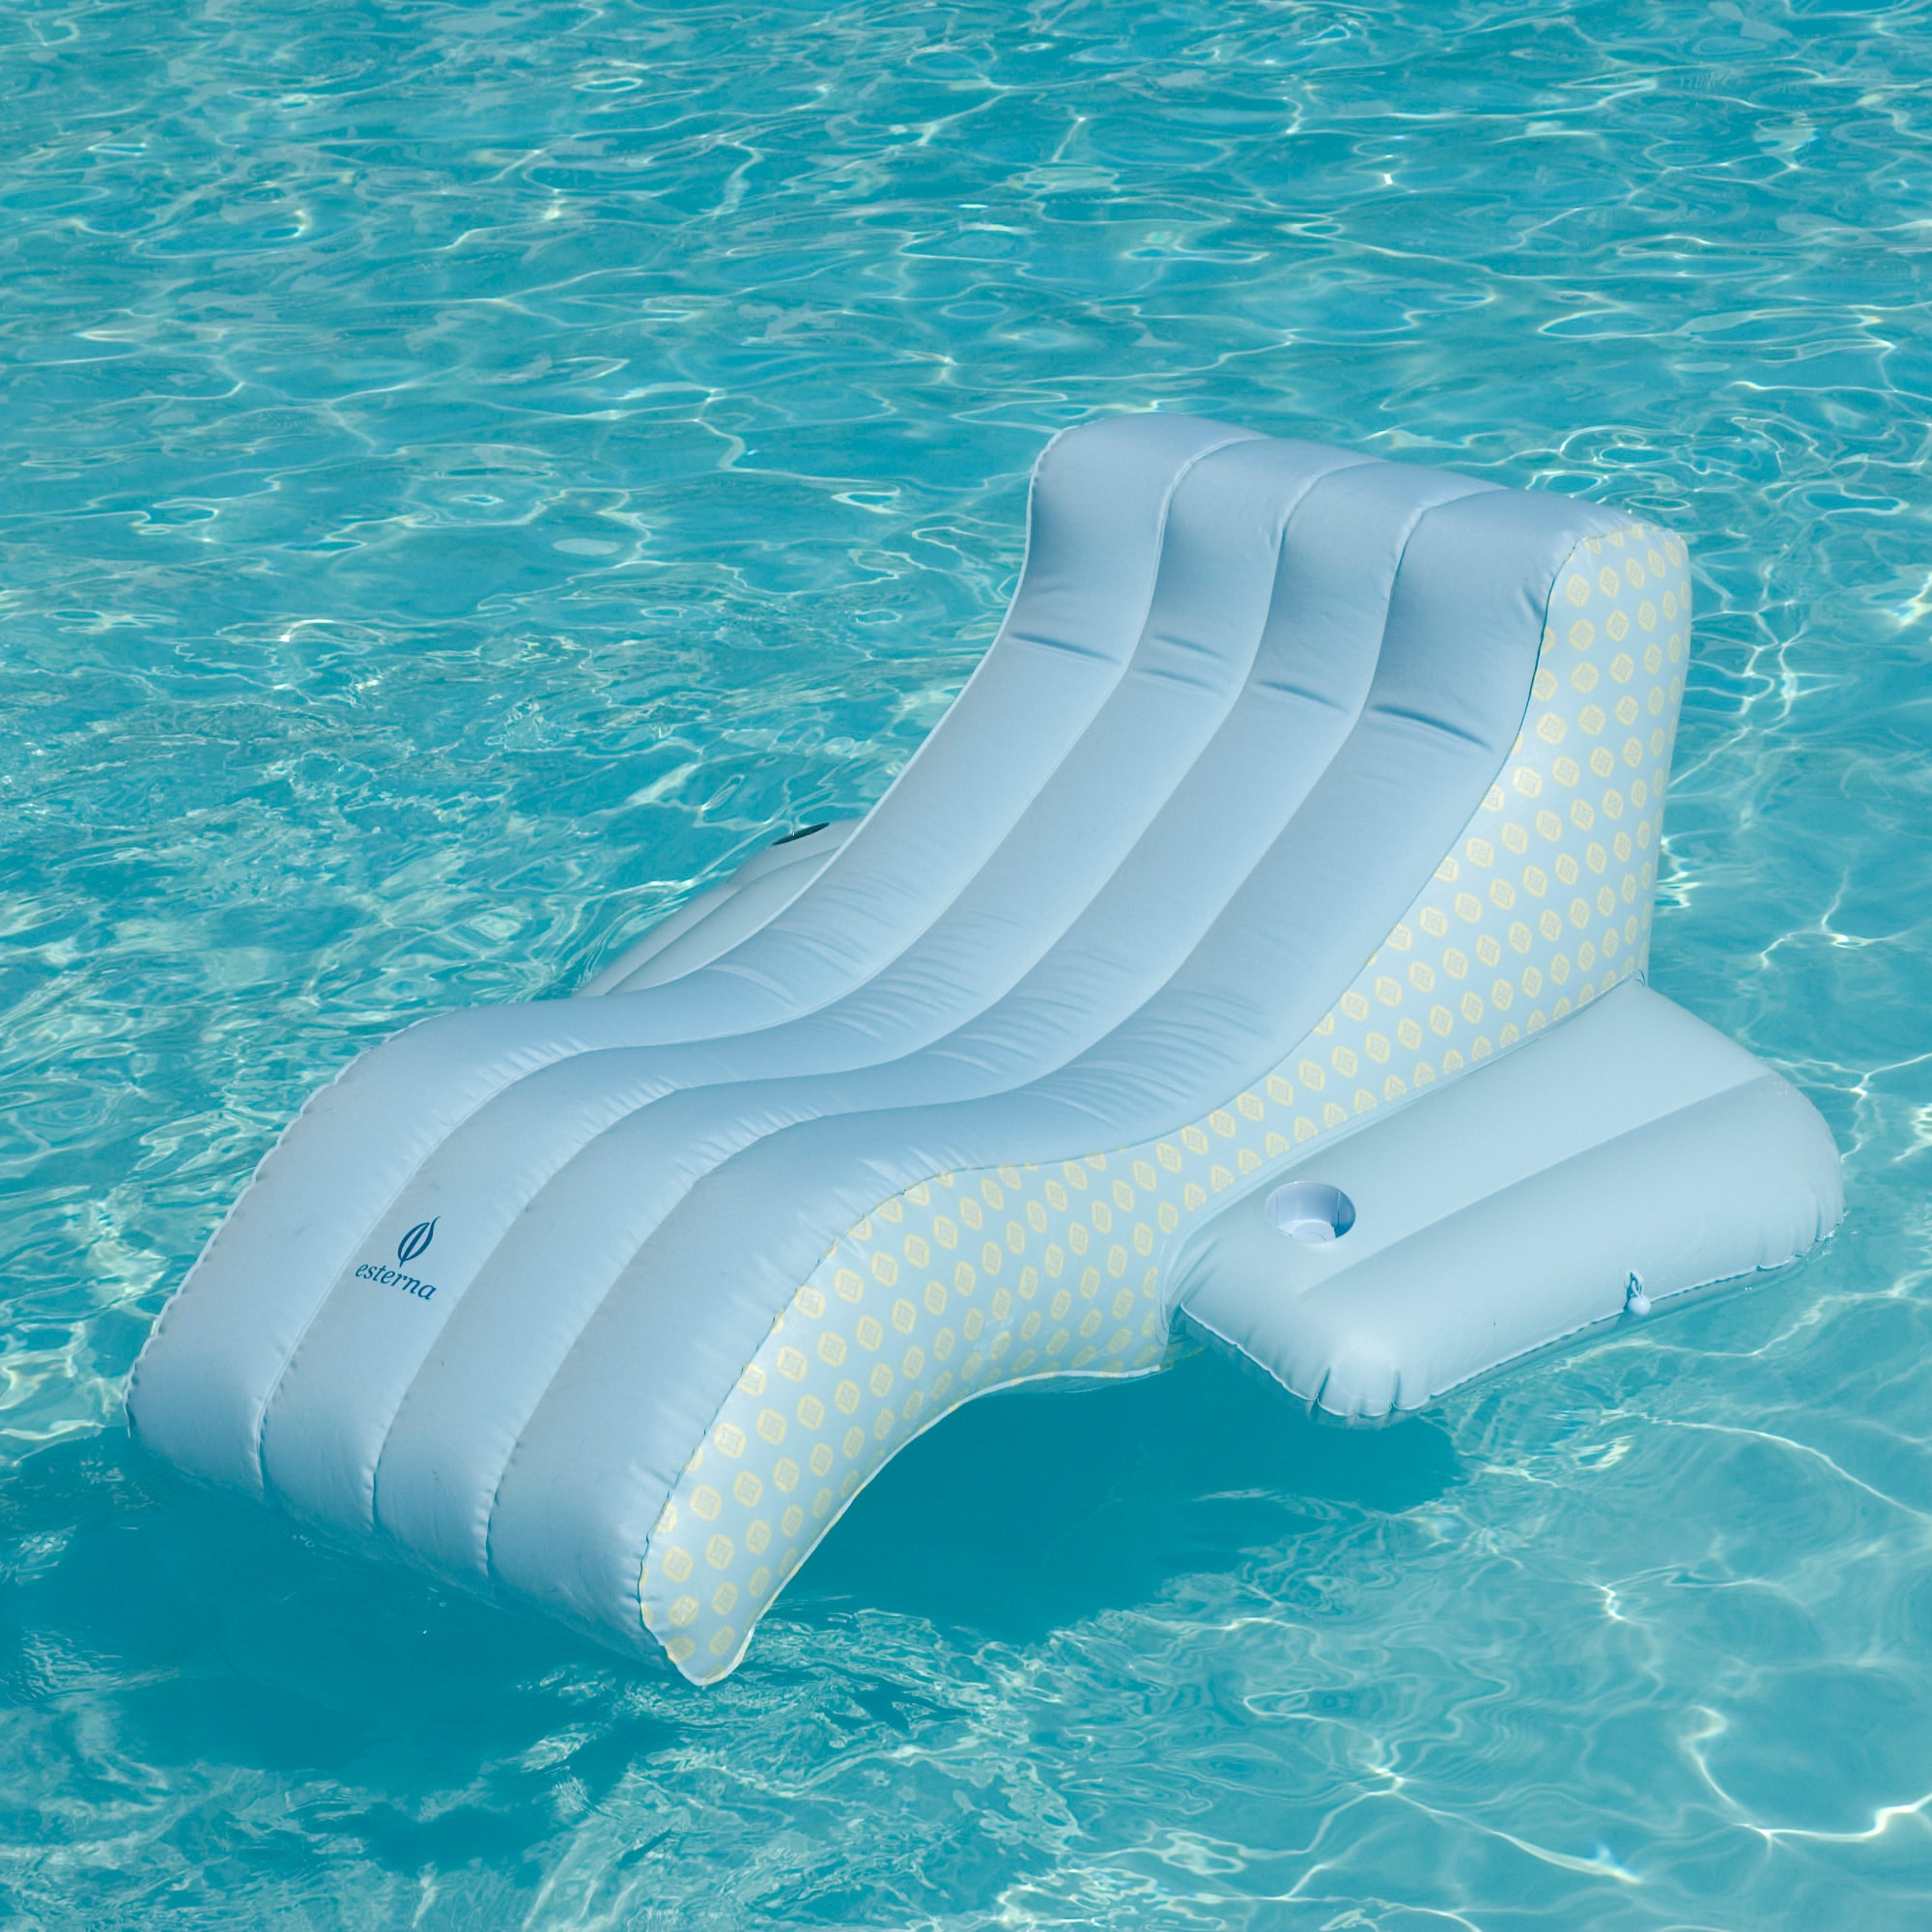 Blue Polyester Zero gravity Pool Lounger with Armrests and Cup Holder Free Shipping Orders